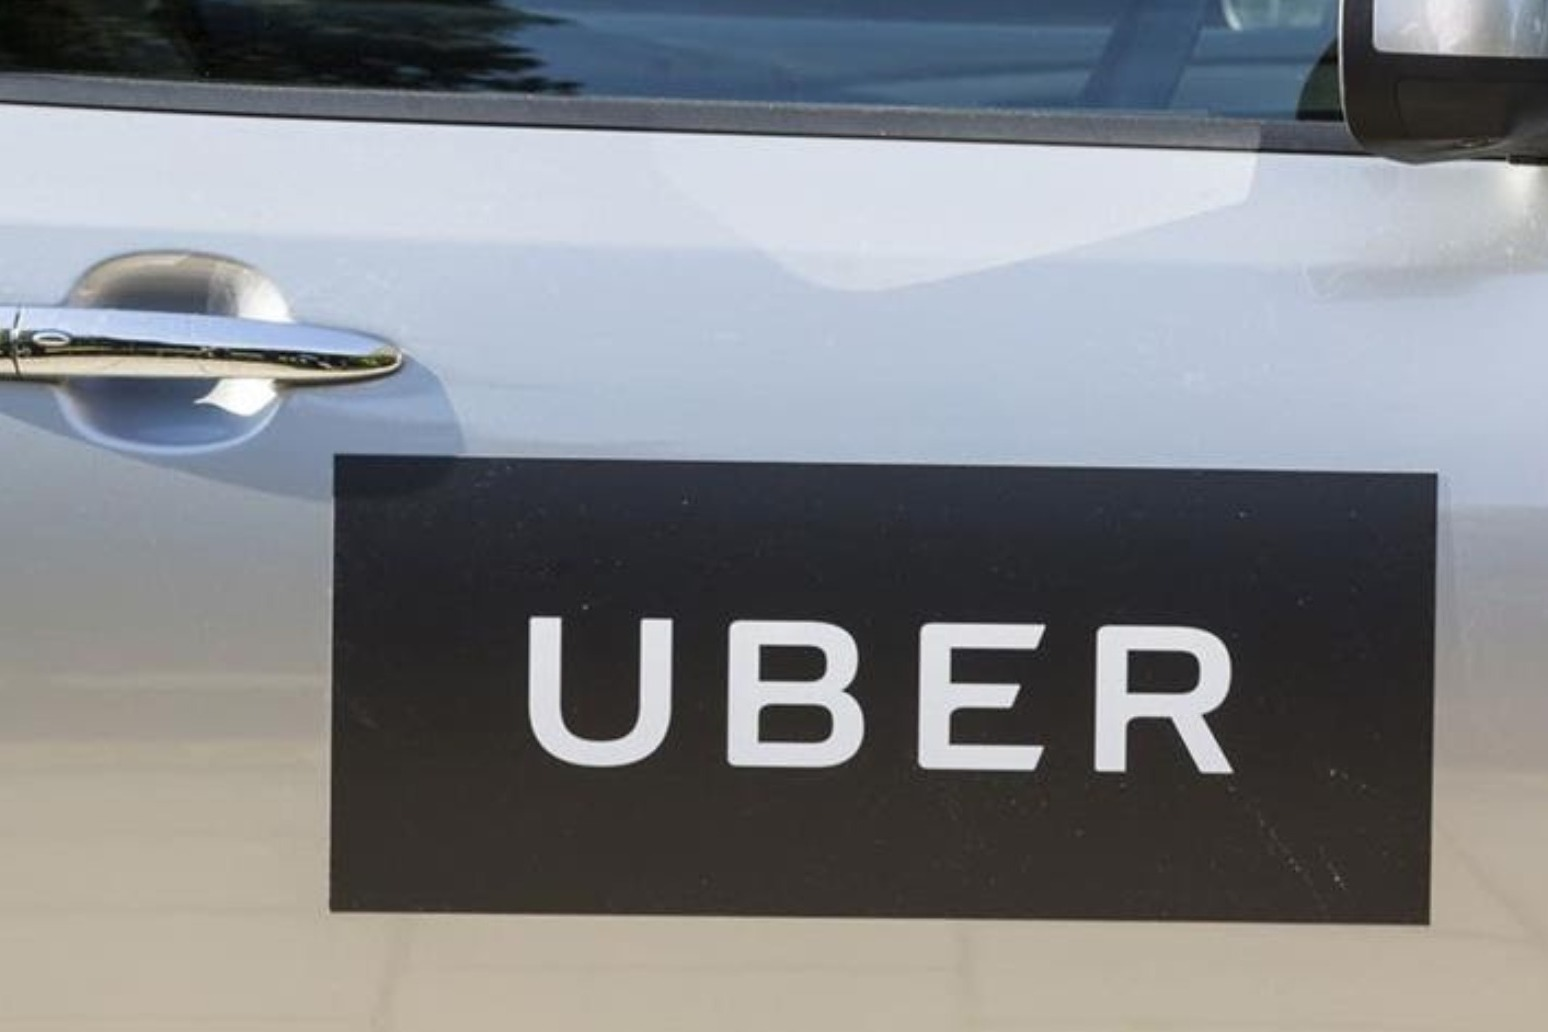 Uber drivers in UK to get earnings guarantee, holiday pay and pensions